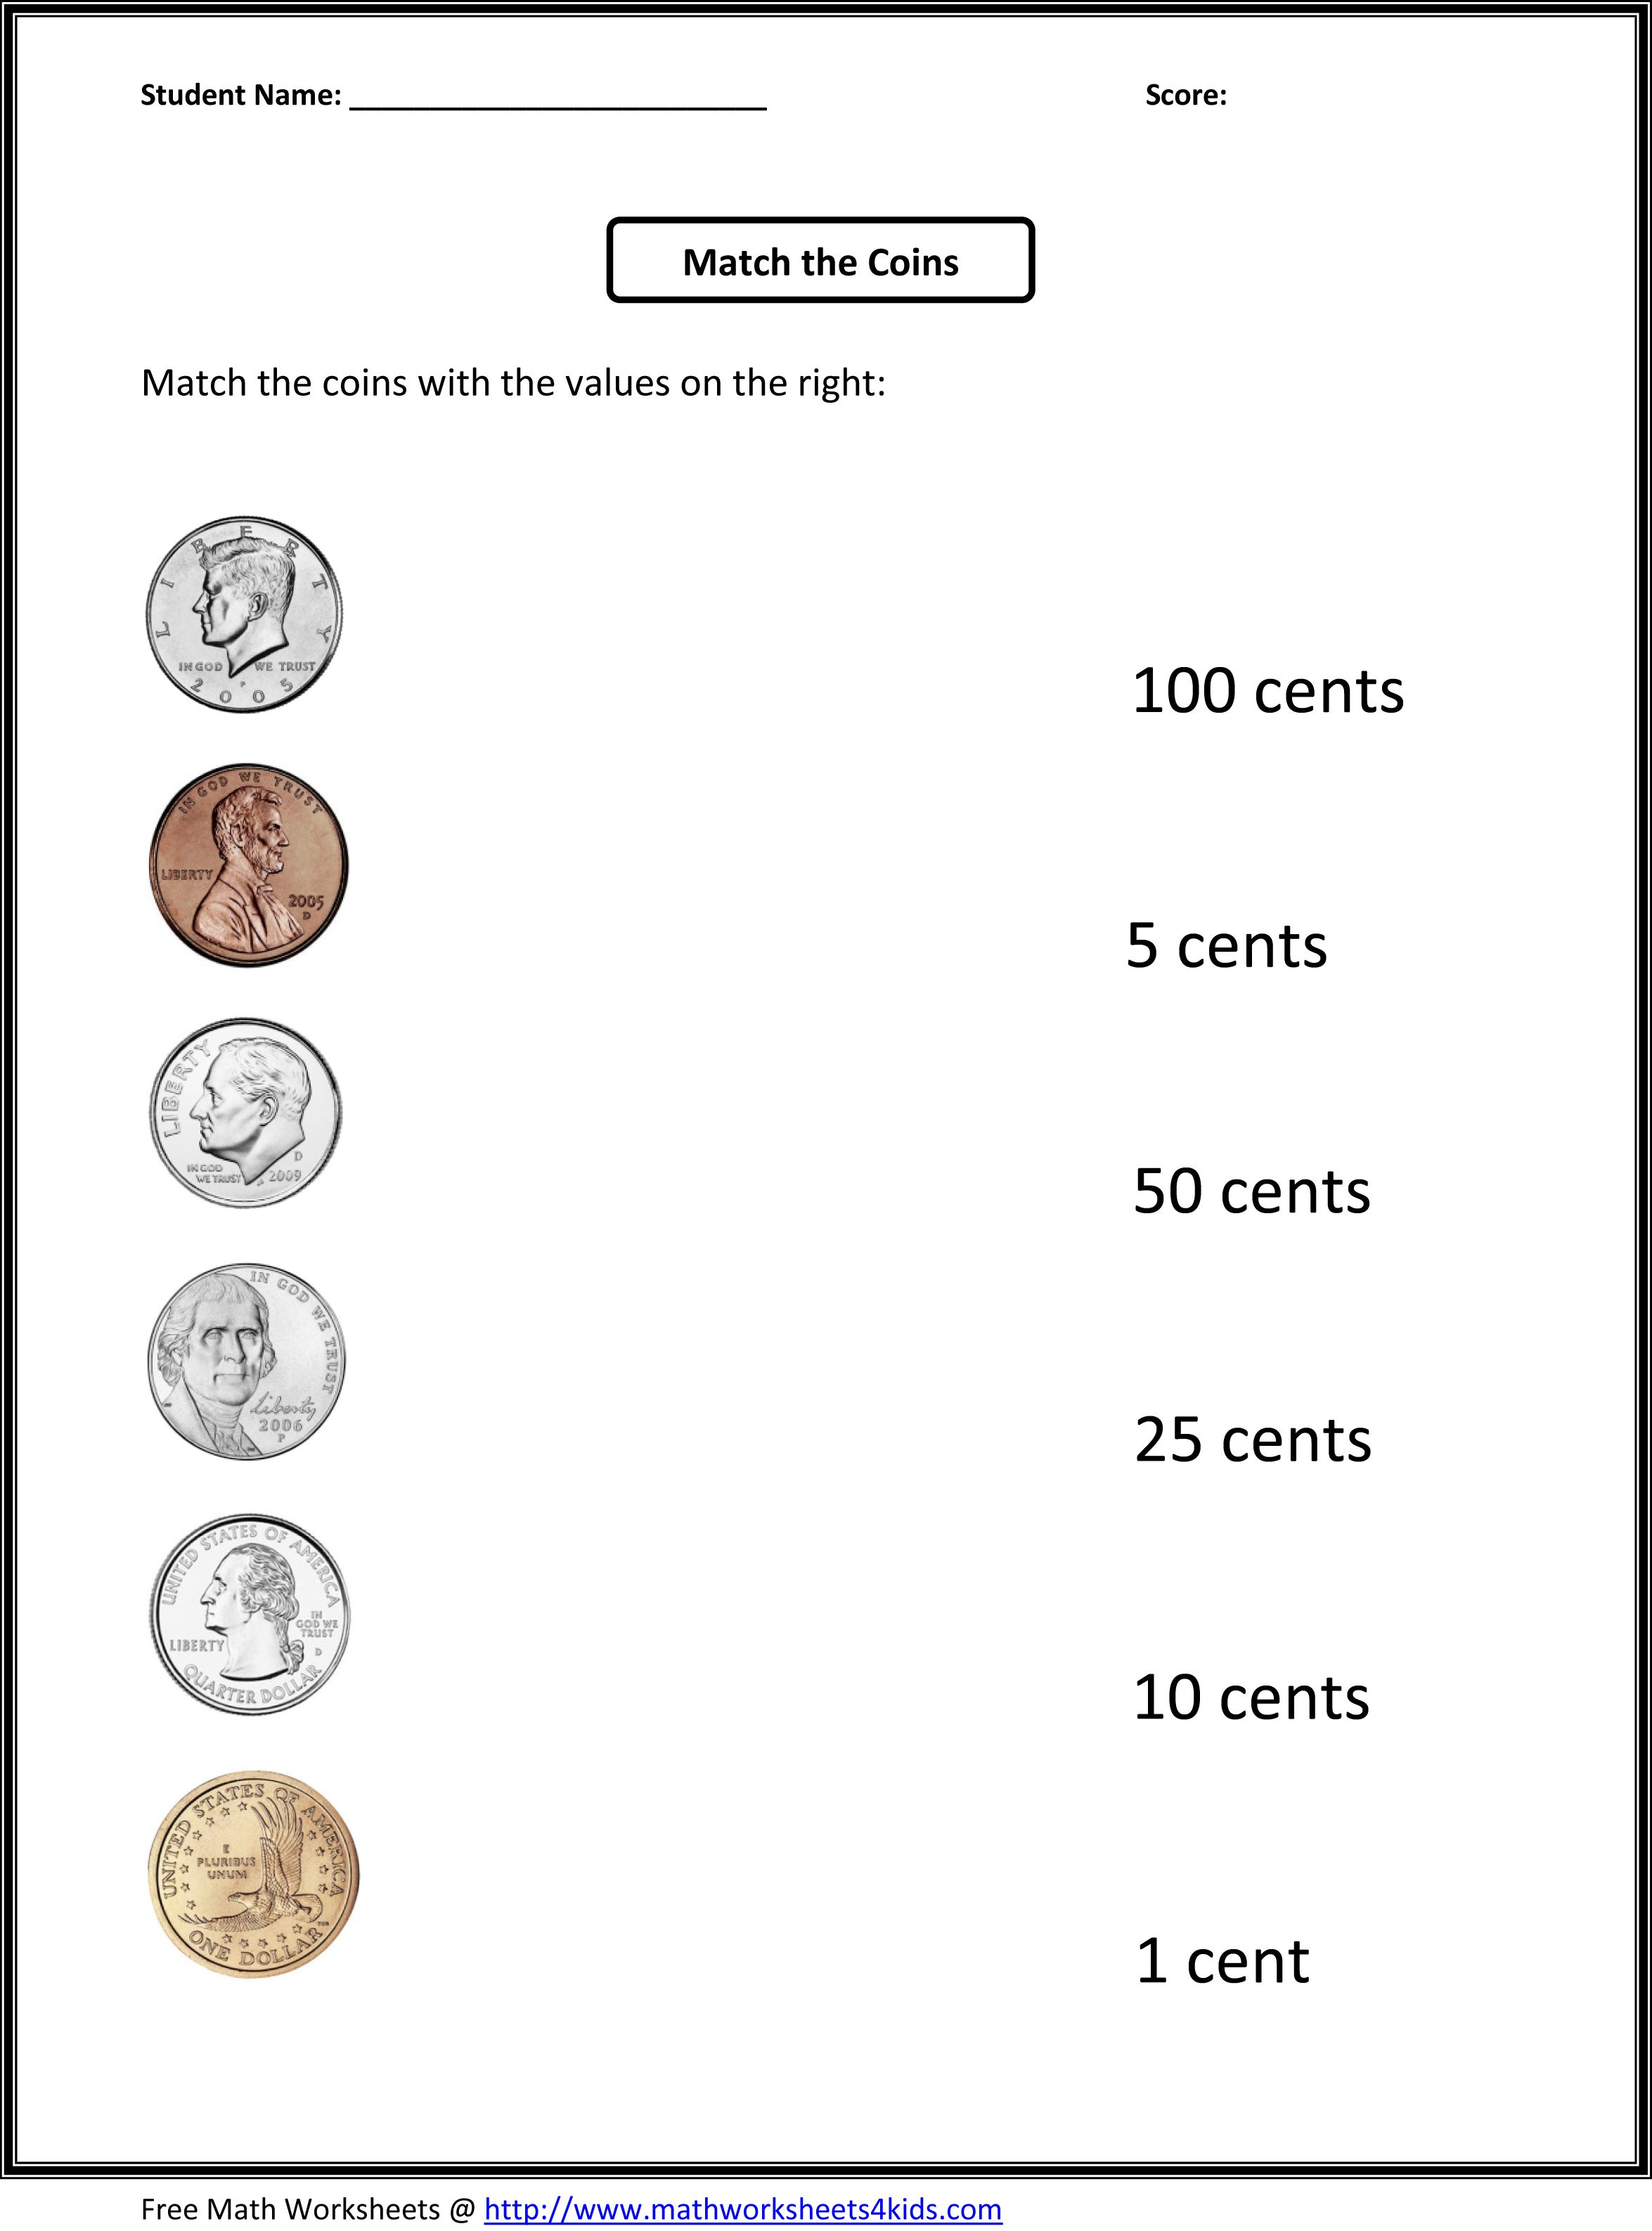 30 Identifying Coins and Coin Values Worksheets ...